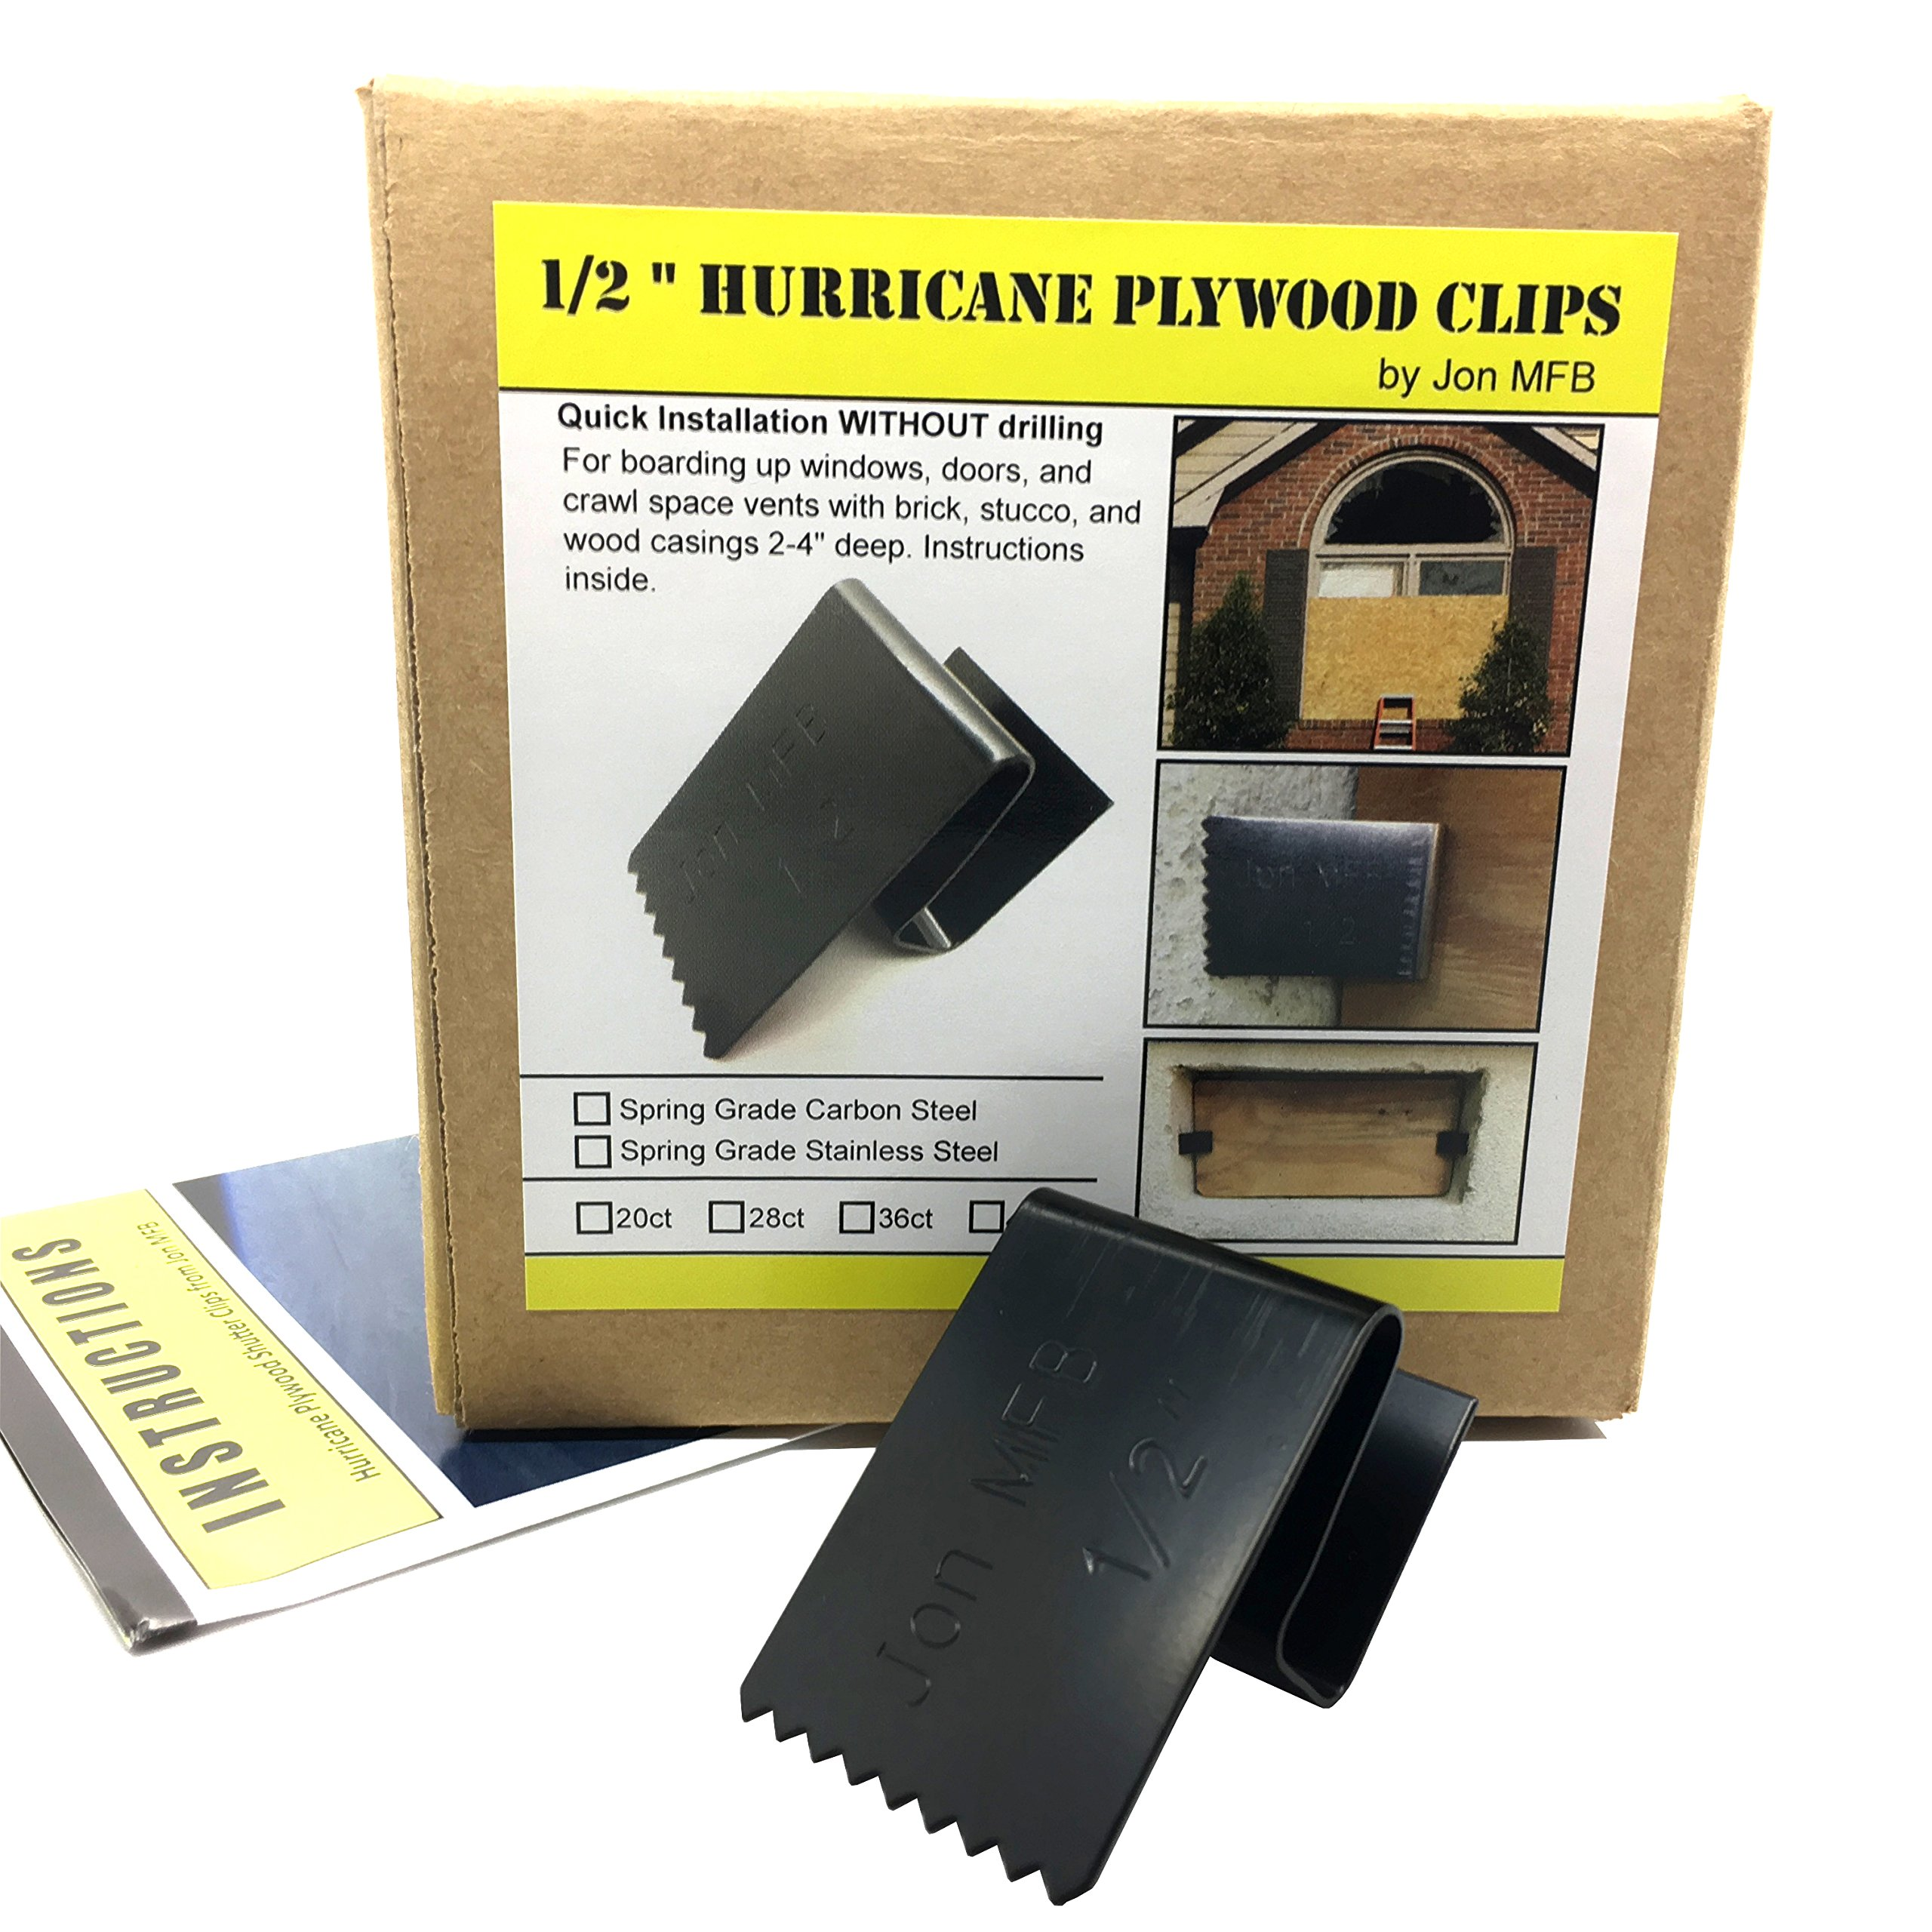 """1/2"""" Hurricane Plywood Clips to Shutter Windows, Spring Grade Carbon Steel - 20 Pack"""